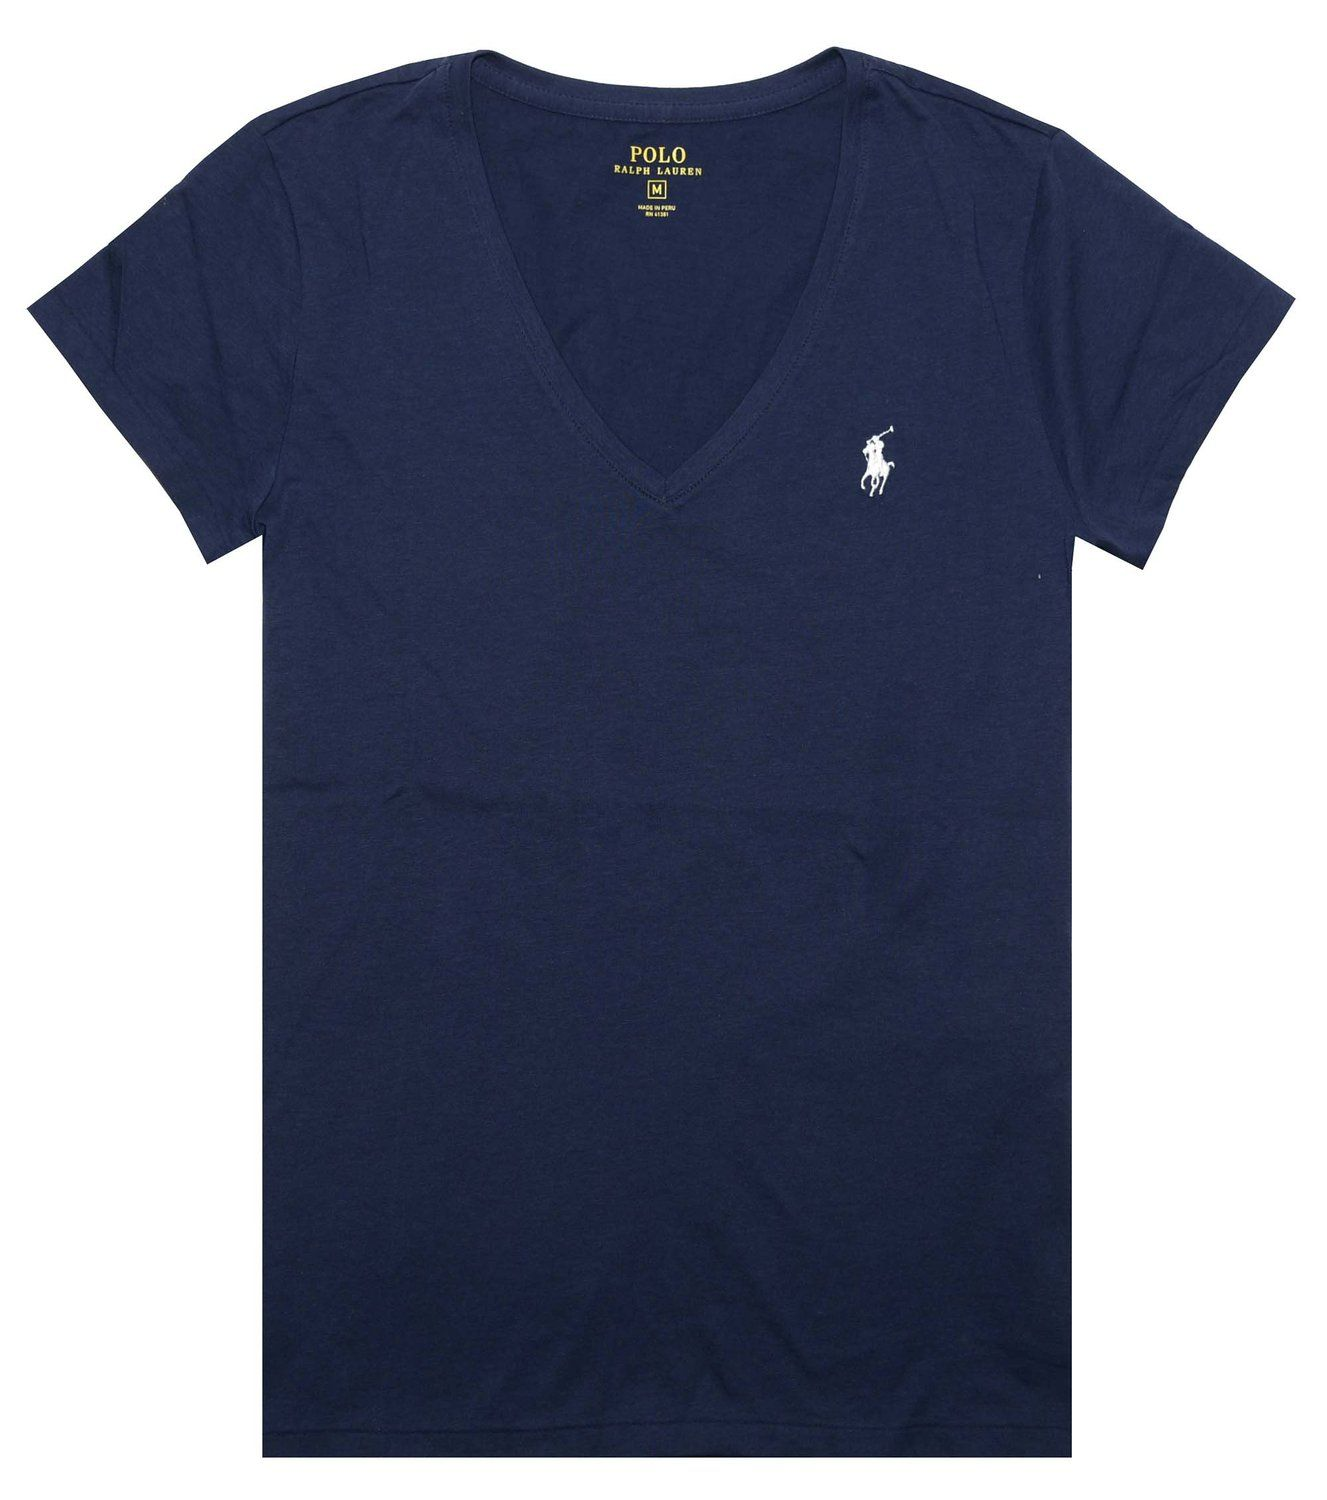 9412a144db934 Polo Ralph Lauren Women's Pony Logo V-Neck Tee at Amazon Women's ...